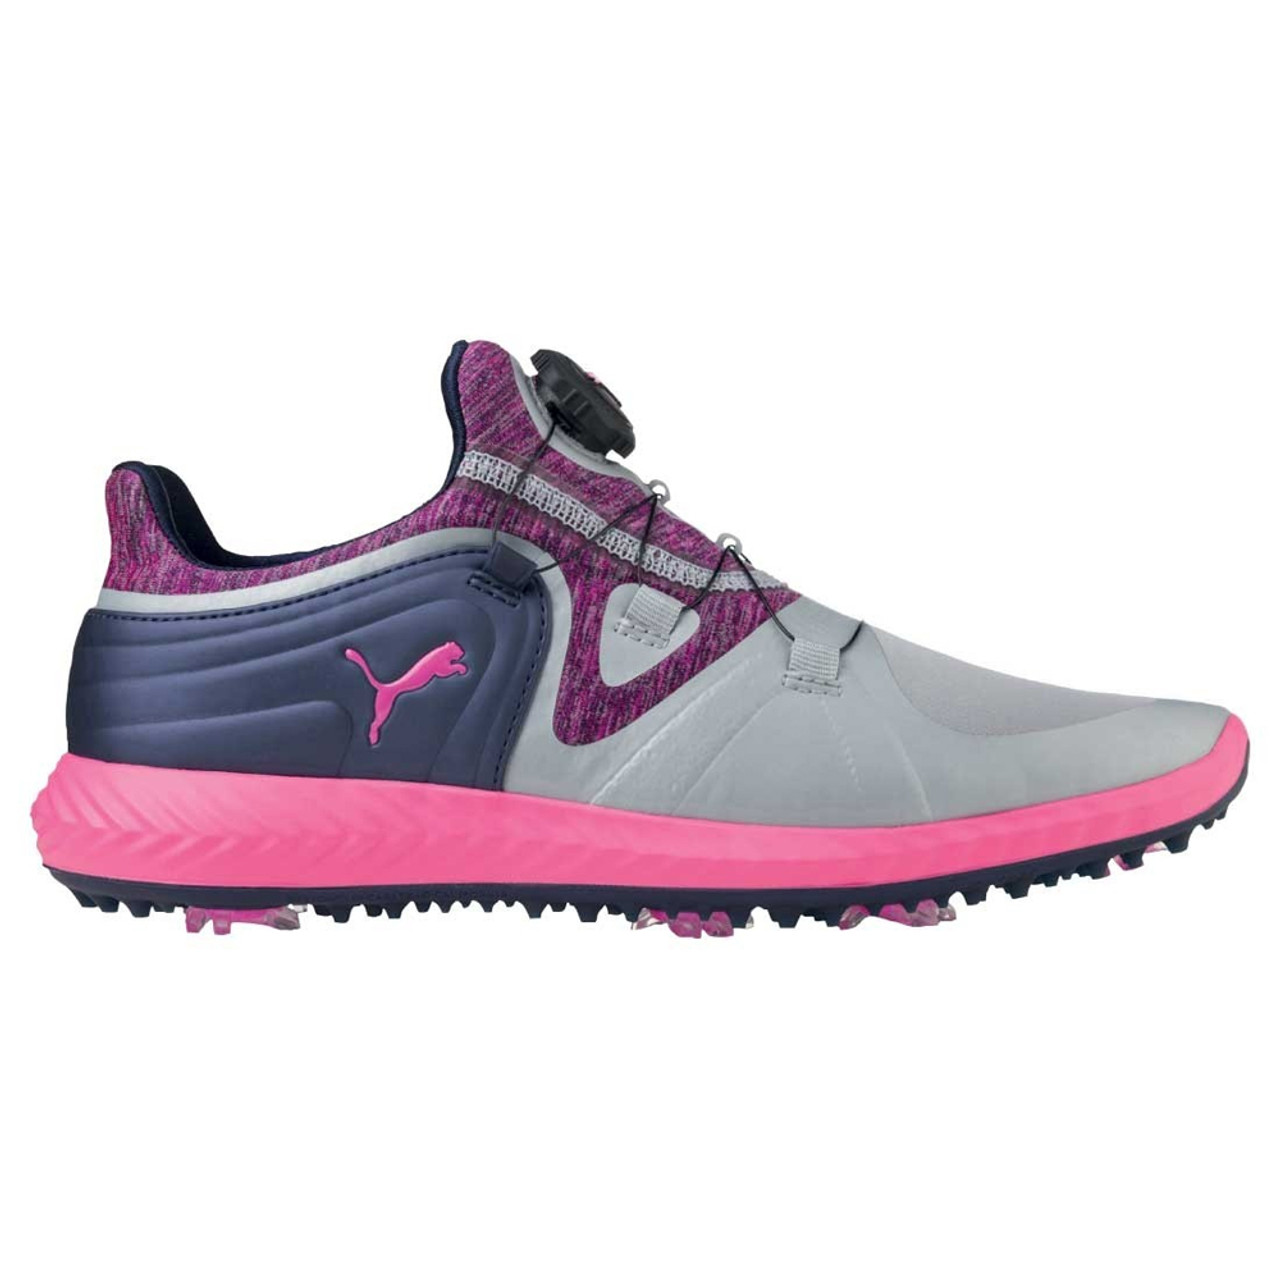 Puma Ignite Blaze Sport Disc Boa Golf Shoes Women Closeout Golfio